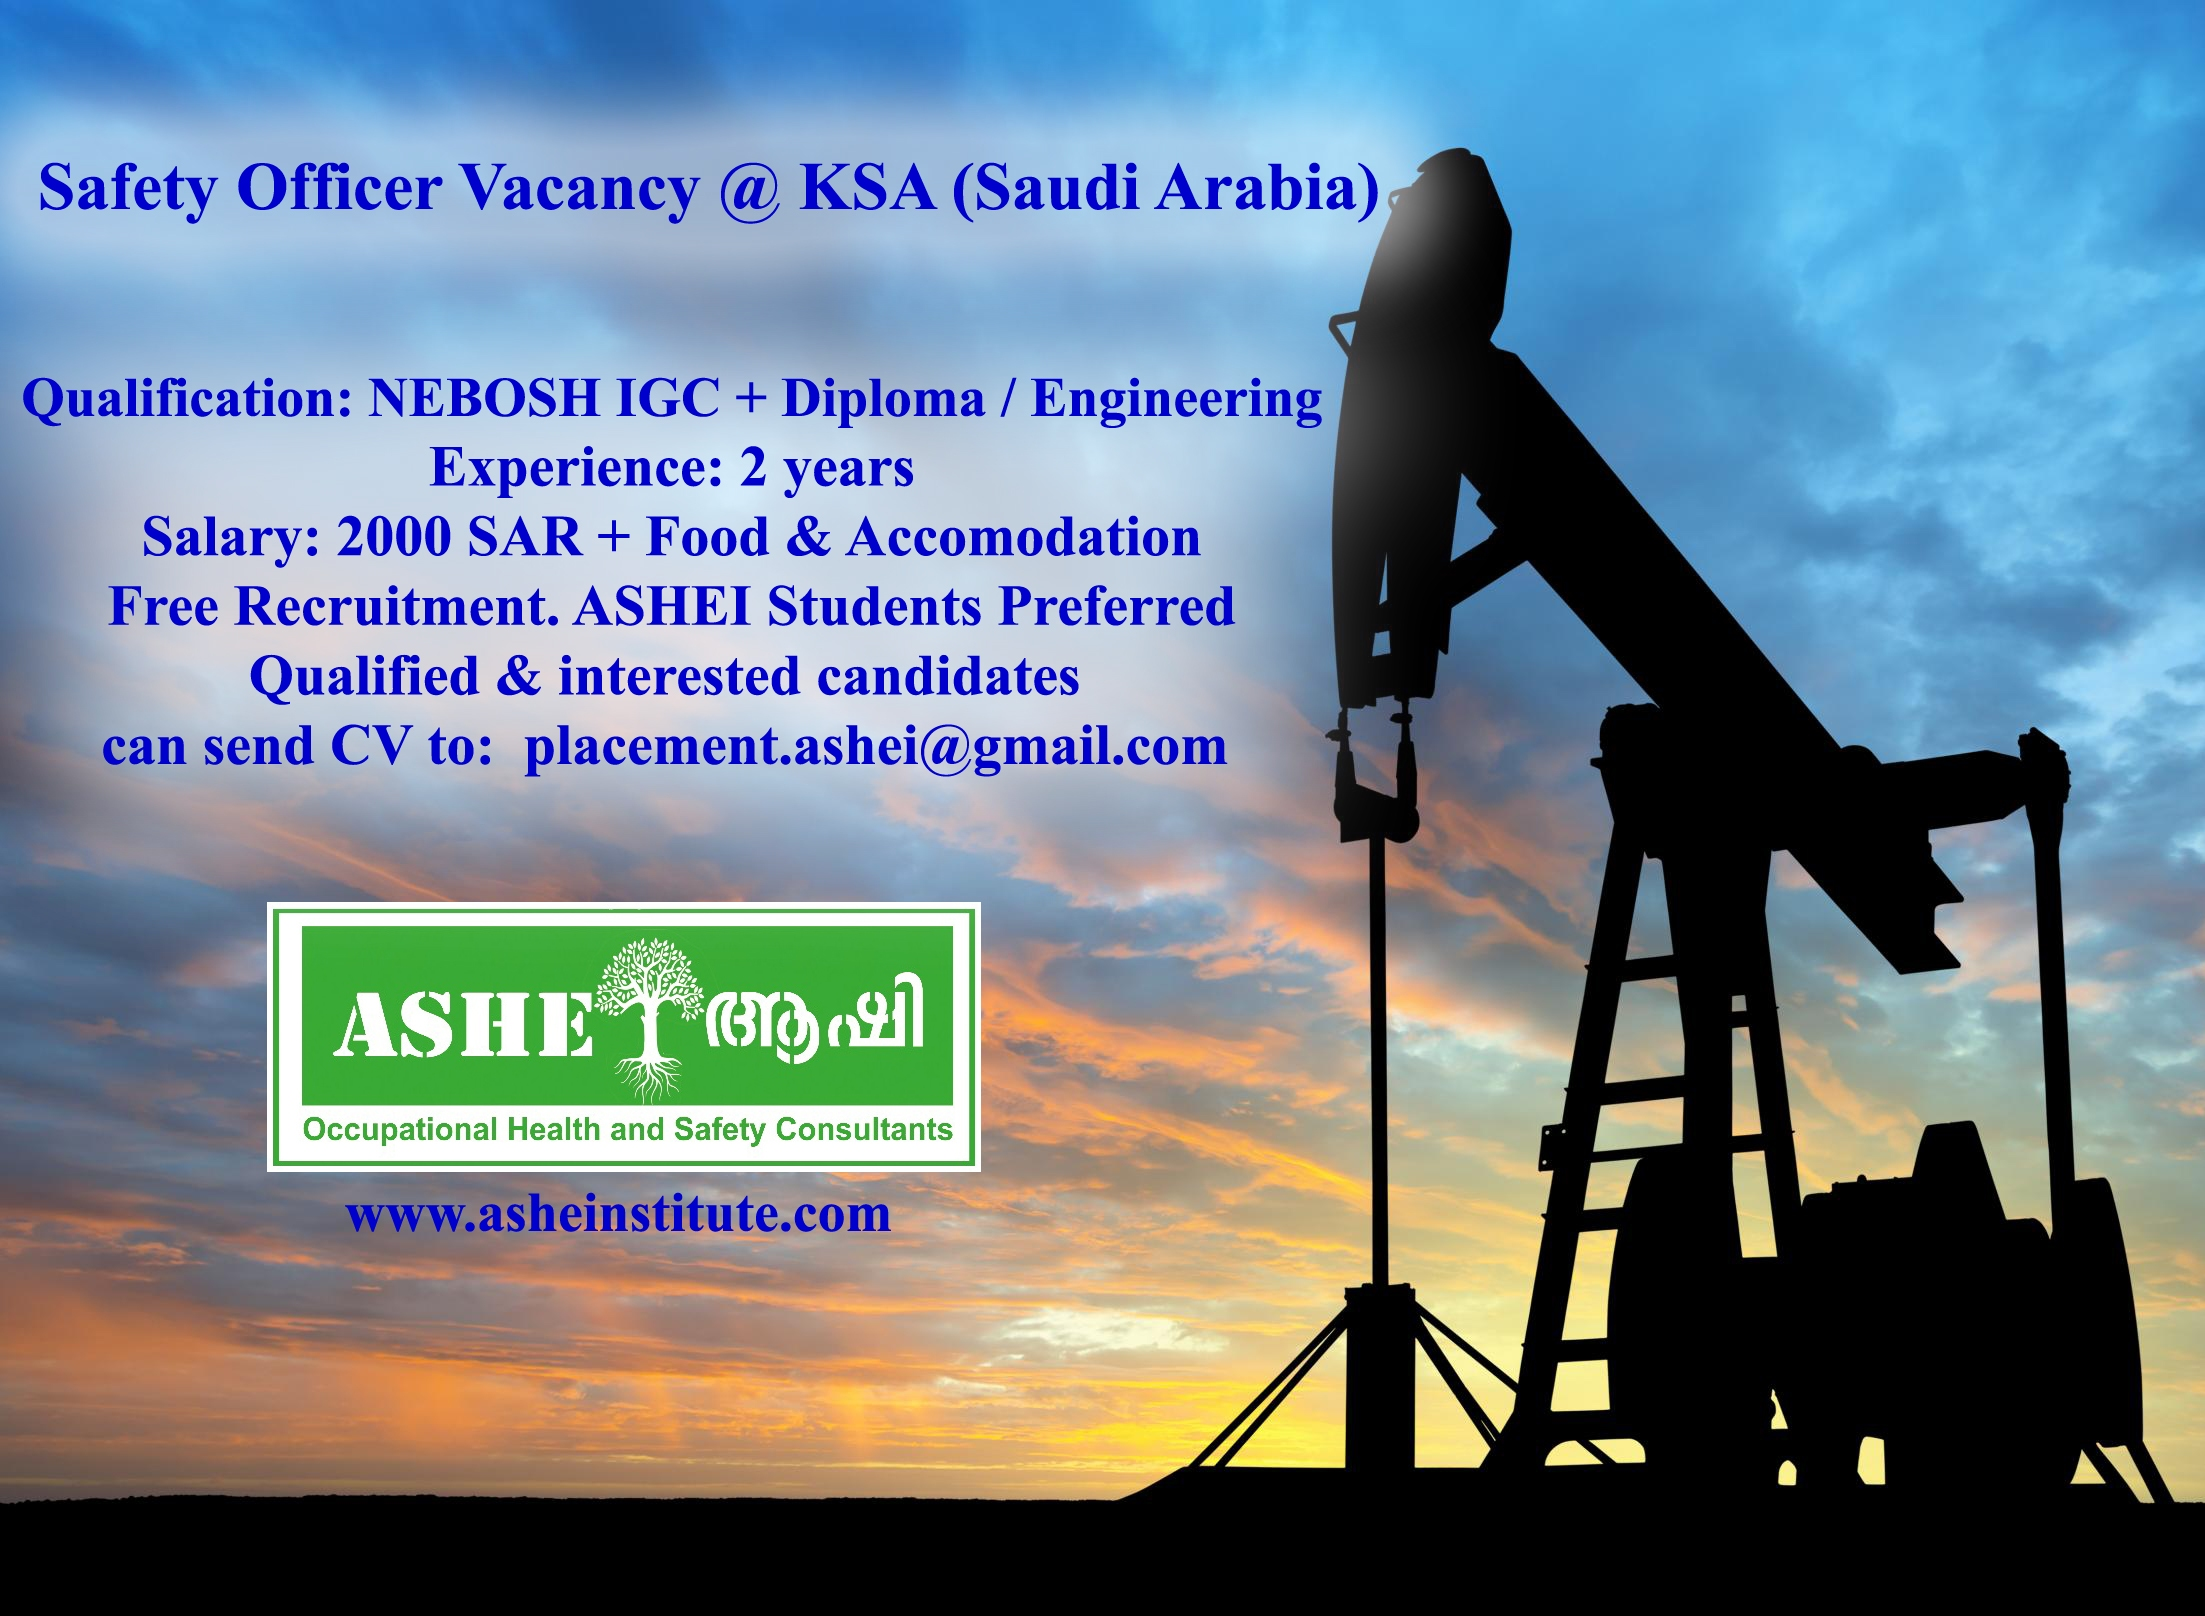 Safety Officer Vacancy at Saudi Arabia visit ASHEI